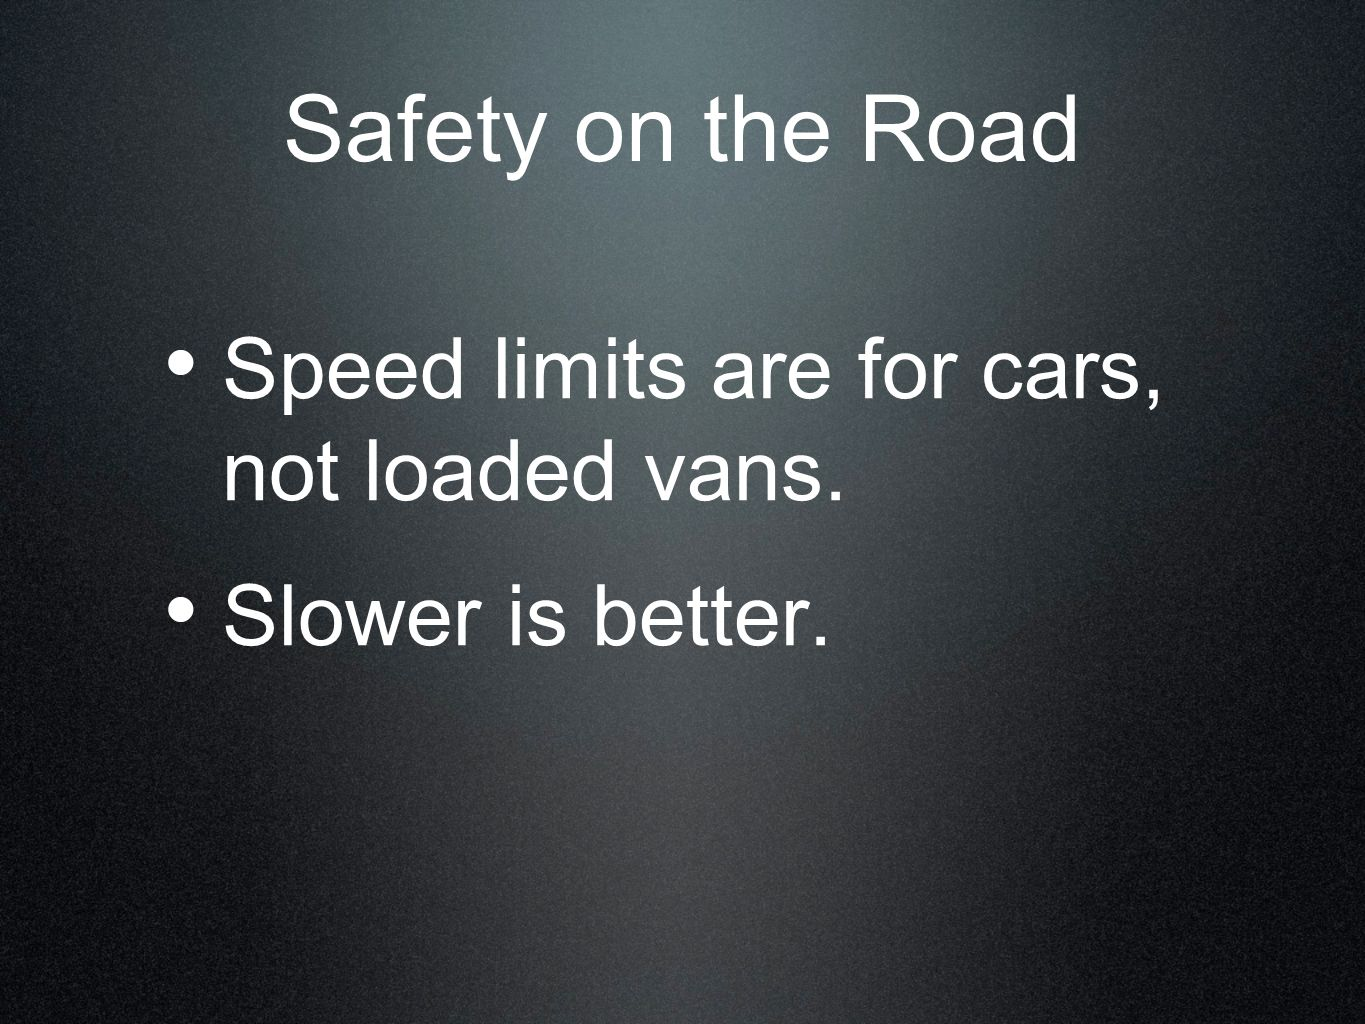 Safety on the Road Speed limits are for cars, not loaded vans.